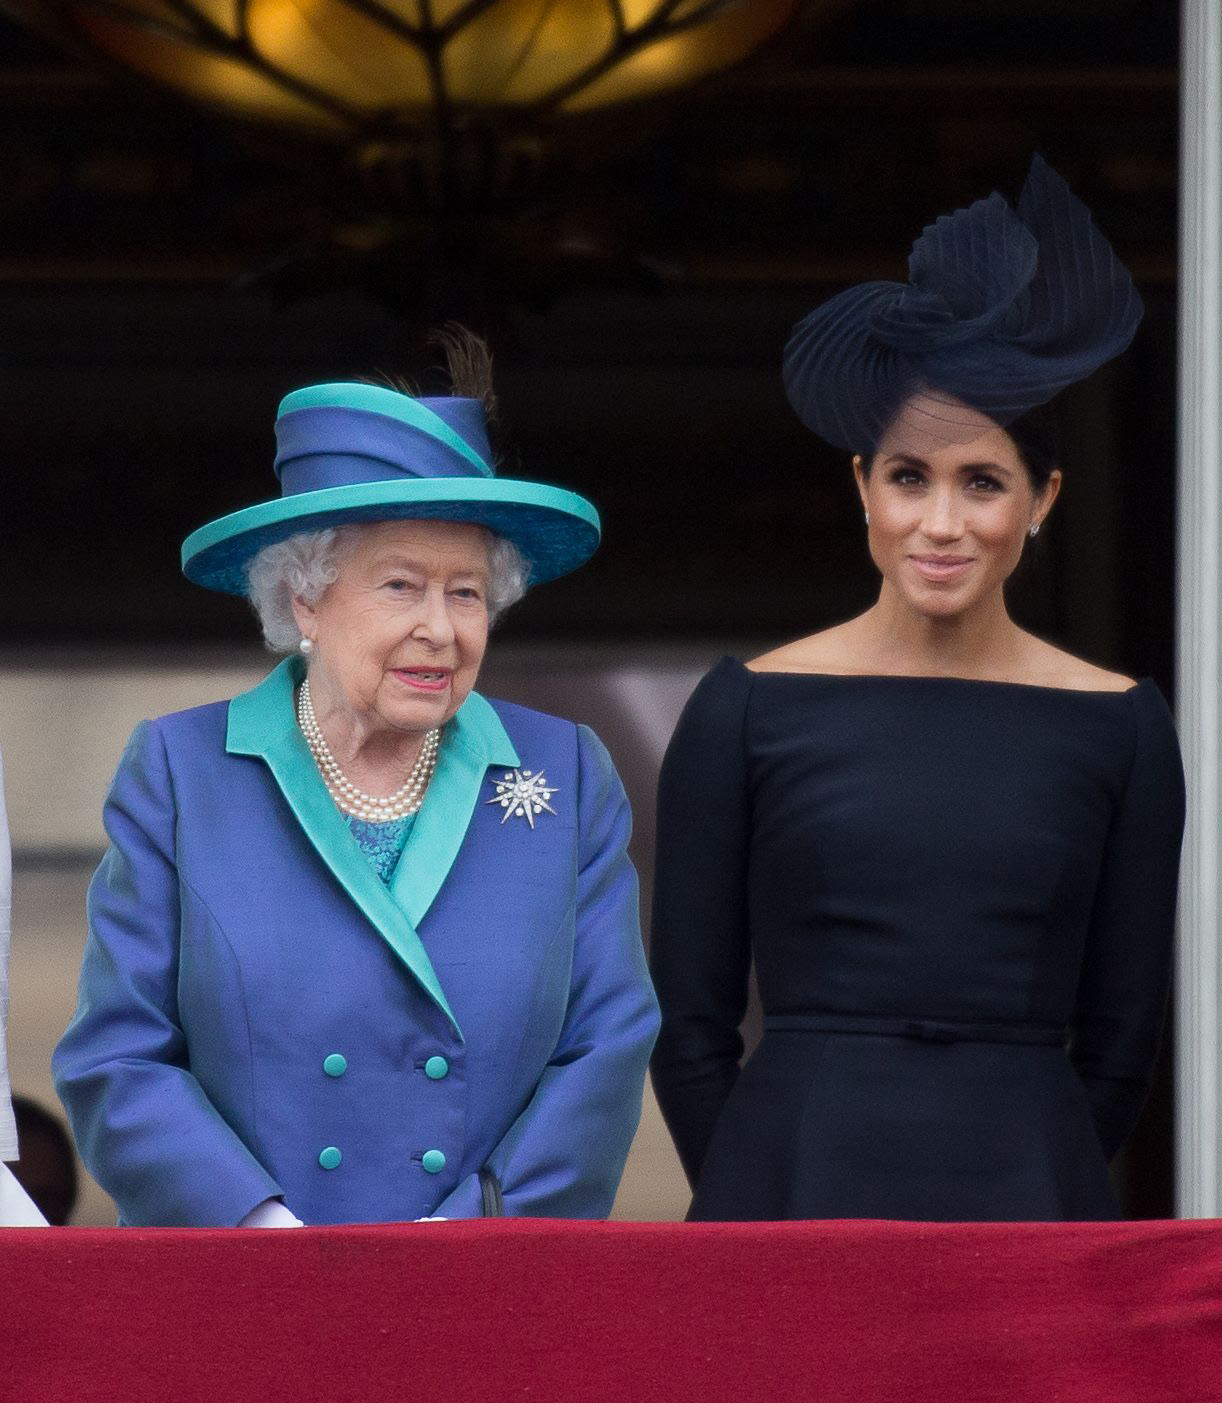 Meghan Markle Will Star In New Documentary About The Queen